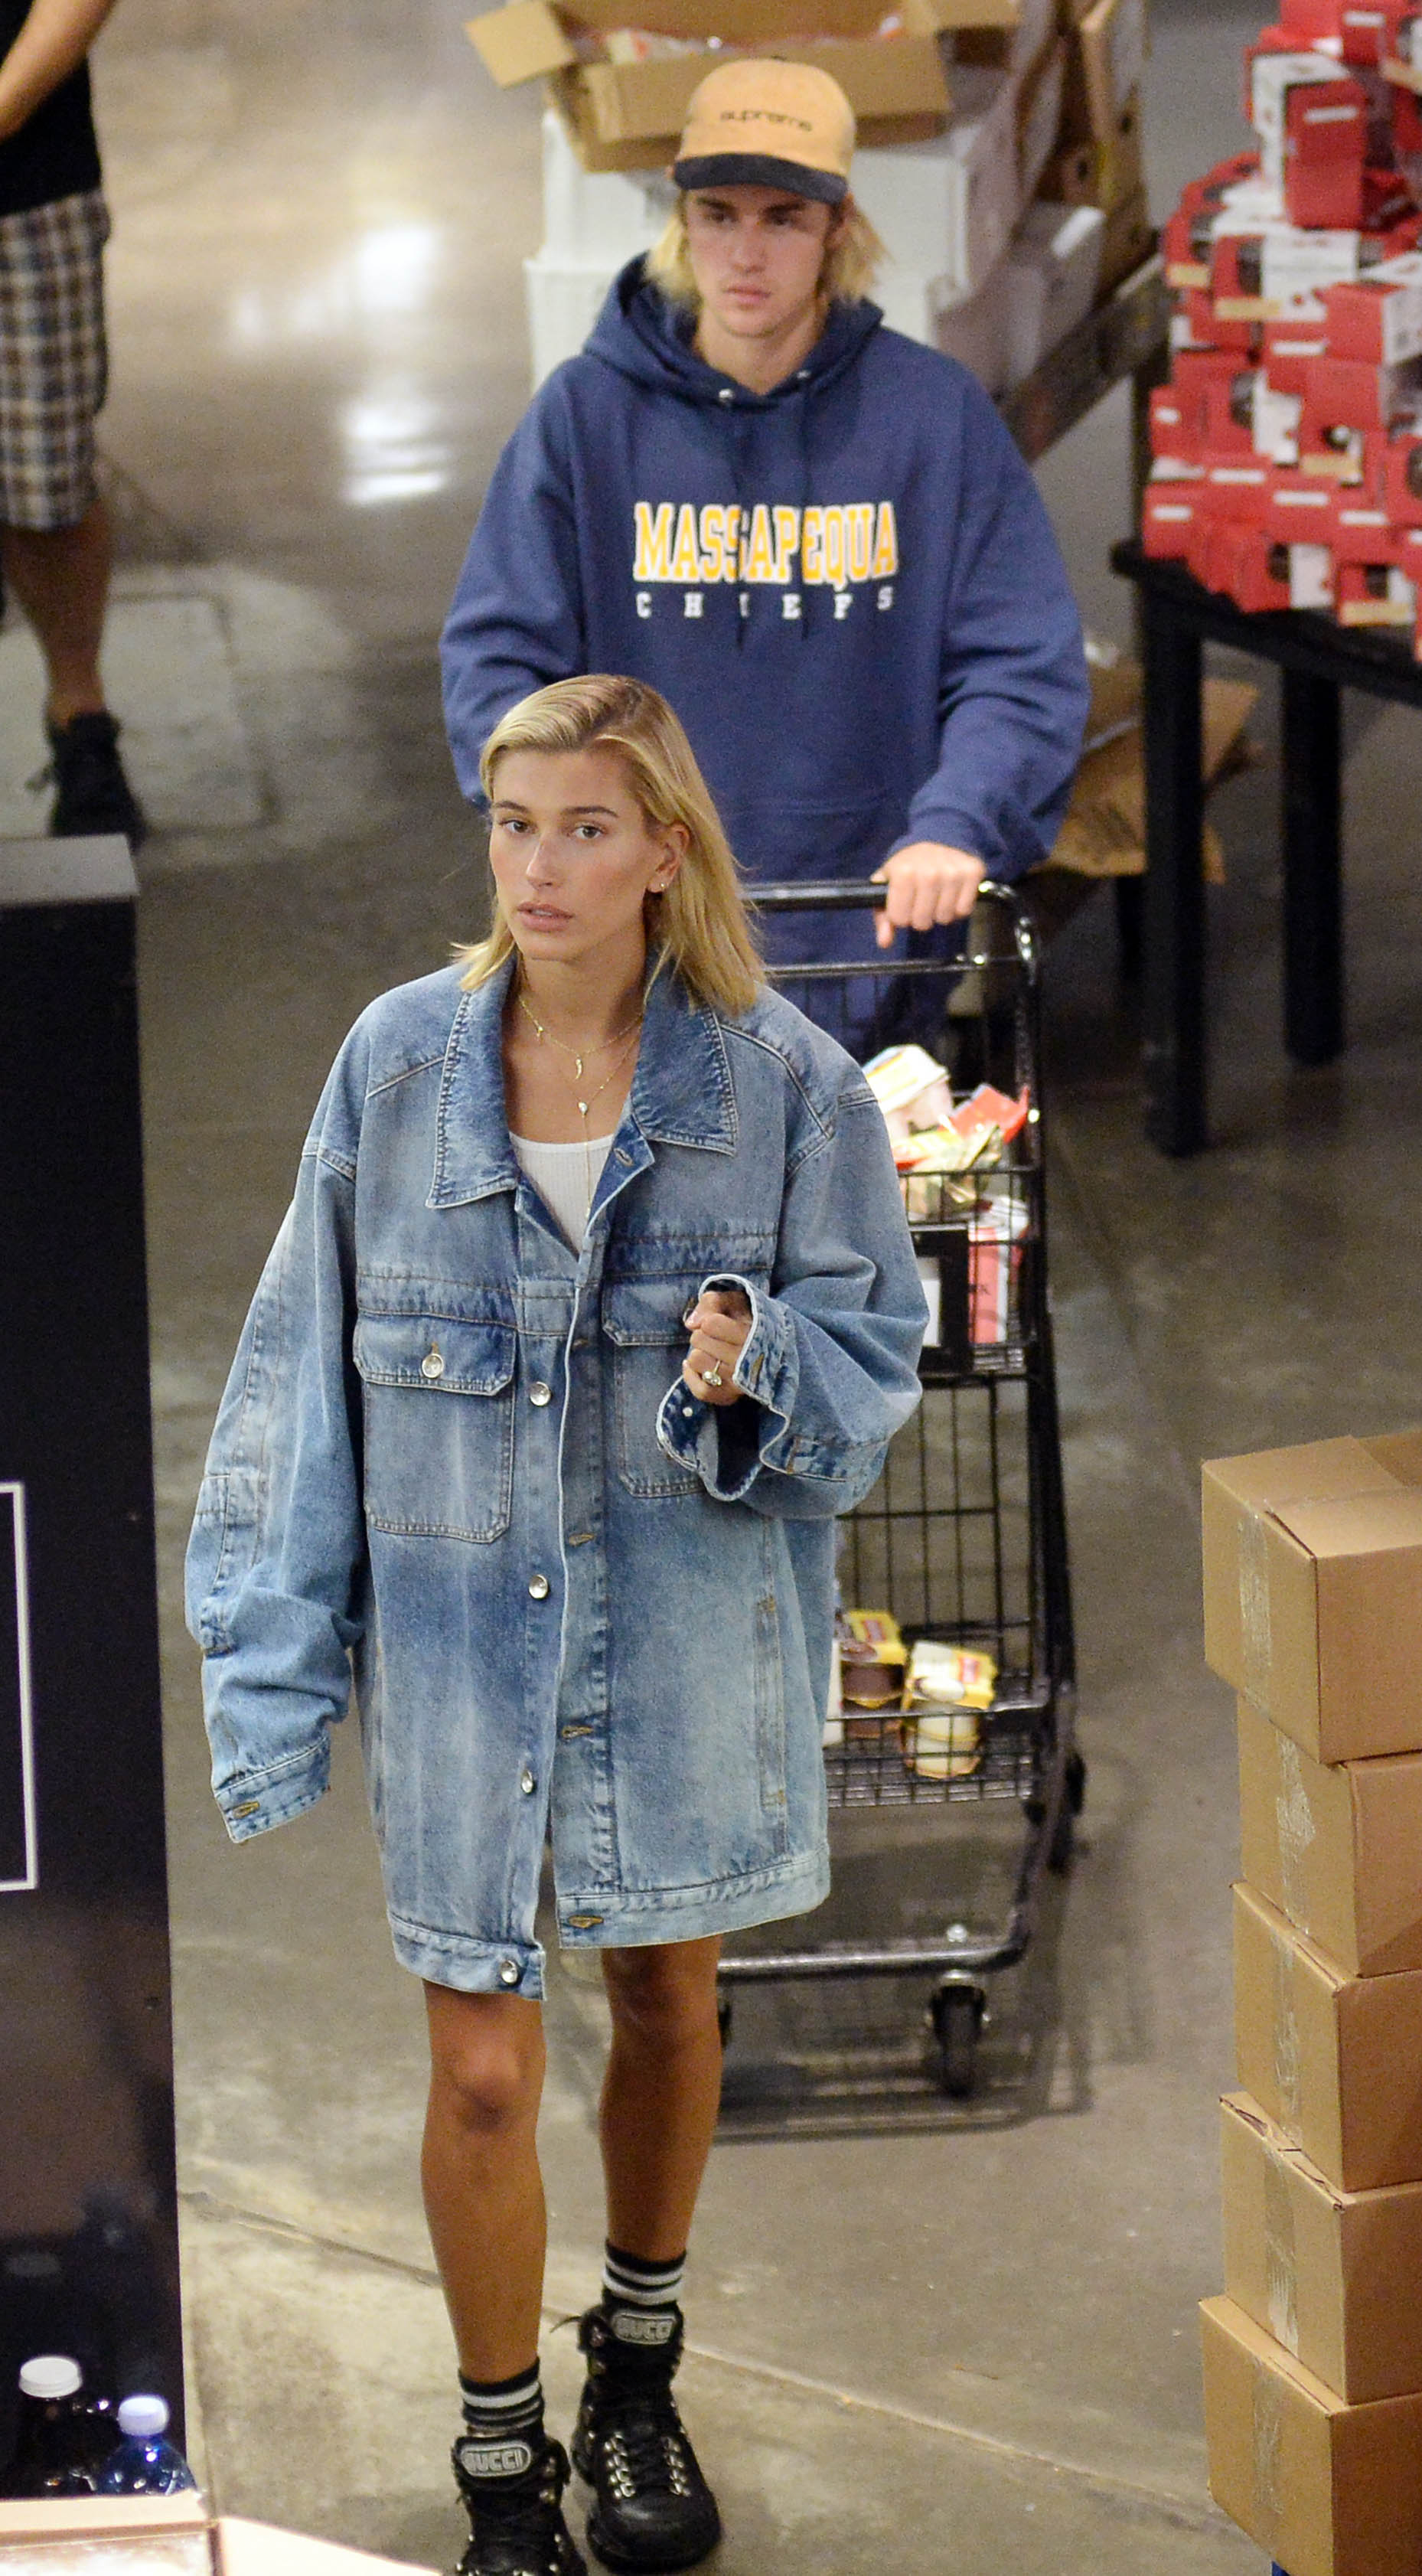 Justin Bieber and his fiance Hailey Baldwin spotted doing their grocery shopping at Wholefoods today in New York CityPictured: Justin Bieber,Hailey BaldwinRef: SPL5012869 280718 NON-EXCLUSIVEPicture by: Elder Ordonez / SplashNews.comSplash News and PicturesLos Angeles: 310-821-2666New York: 212-619-2666London: 0207 644 7656Milan: +39 02 4399 8577Sydney: +61 02 9240 7700photodesk@splashnews.comWorld Rights, No Portugal Rights